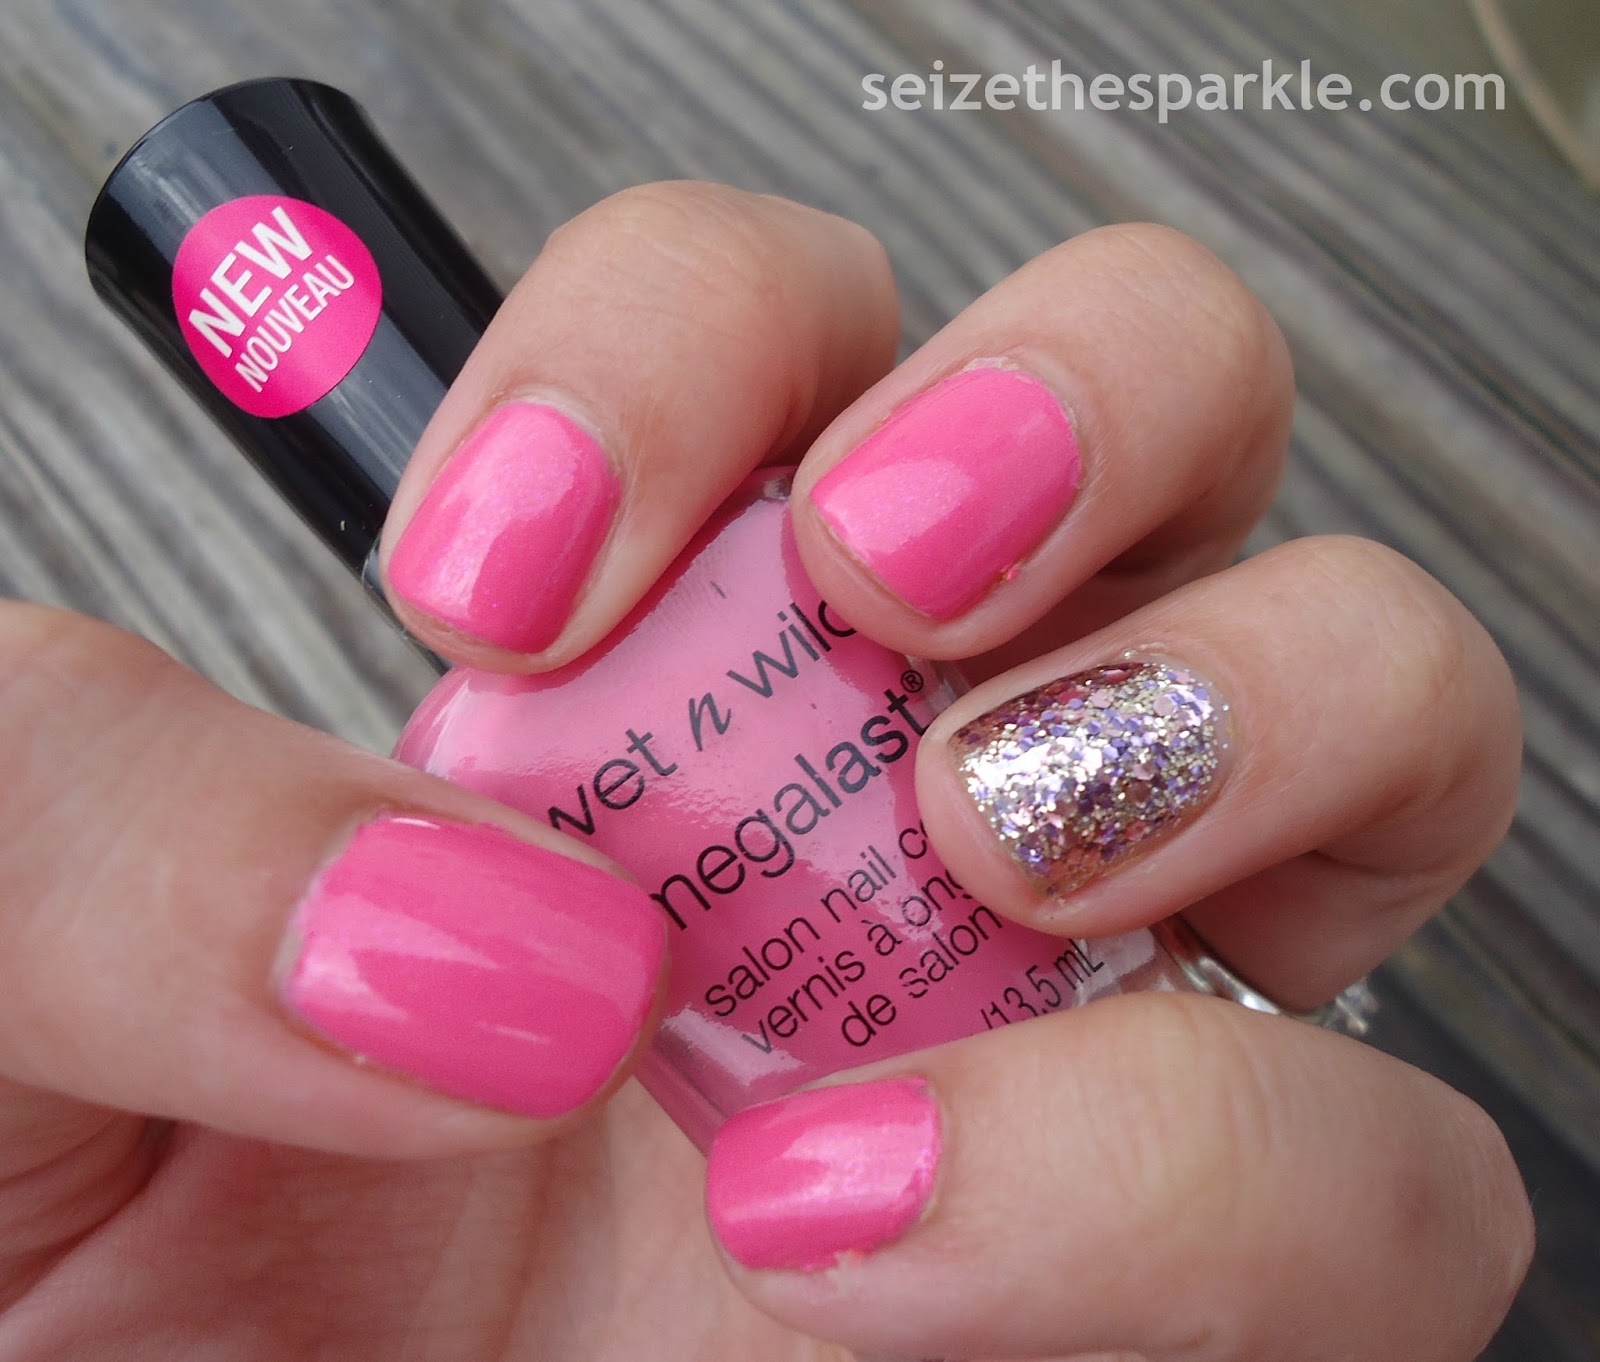 Layering Sweet Candy Sparkles Seize The Sparkle Wet N Wild Megalast Salon Nail Color Candylicious With Polishes Used